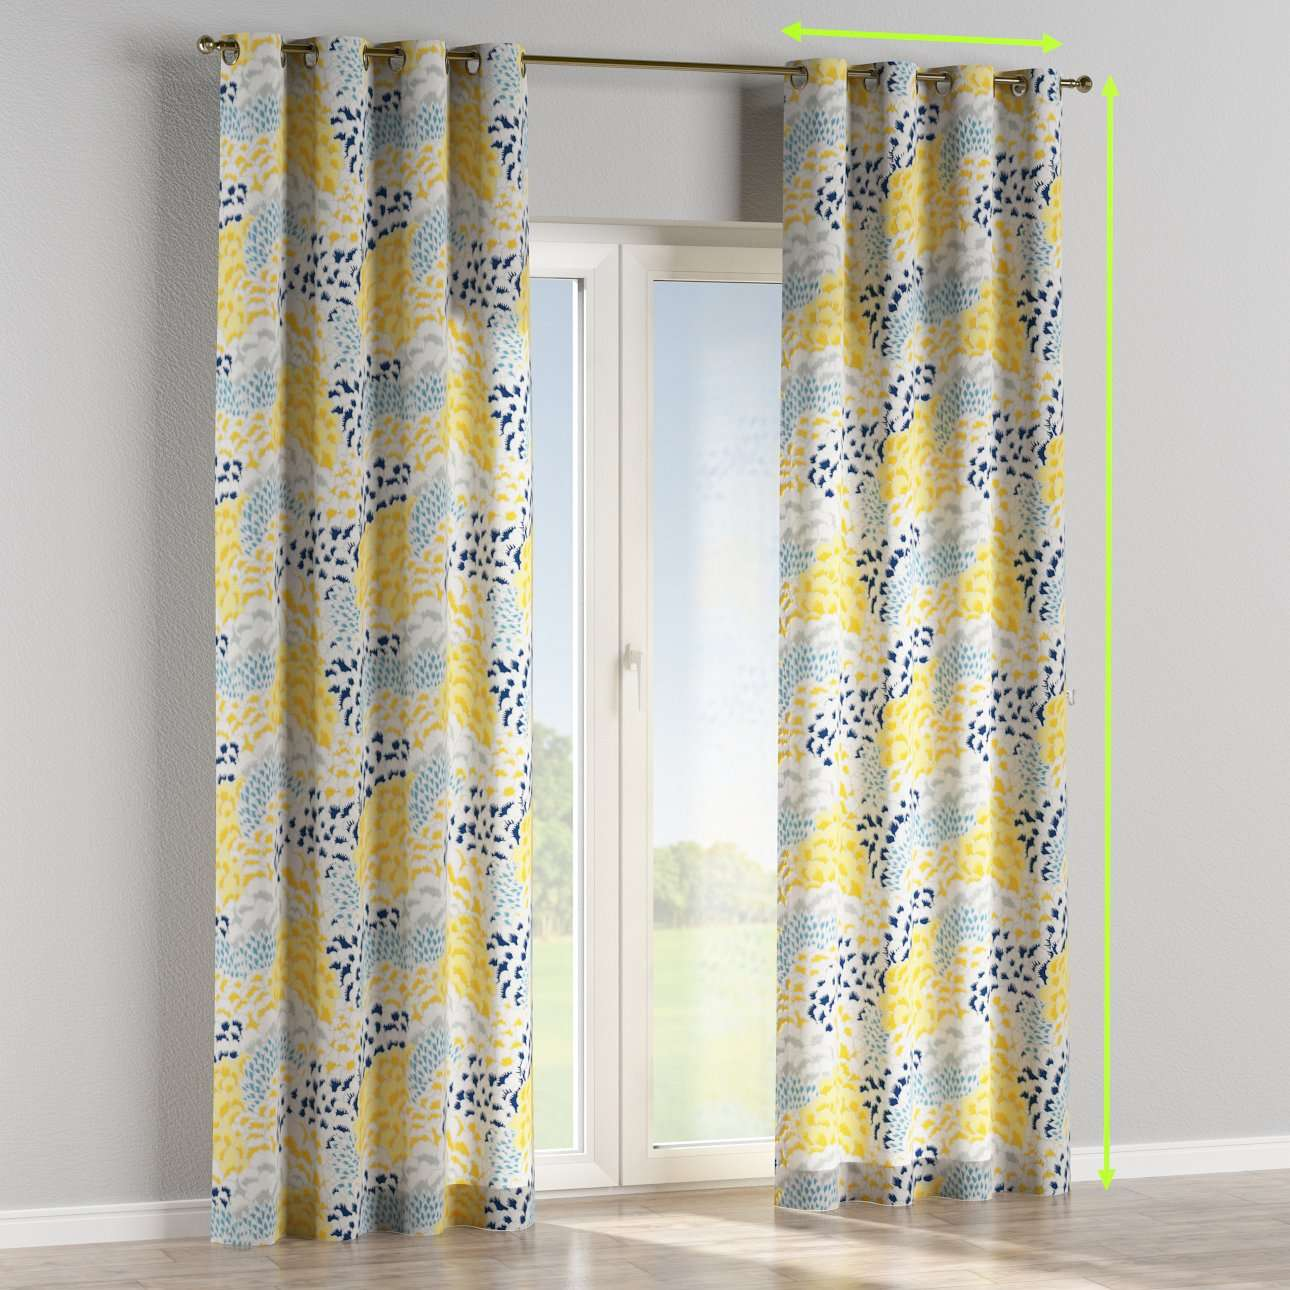 Eyelet lined curtains in collection Brooklyn, fabric: 137-86